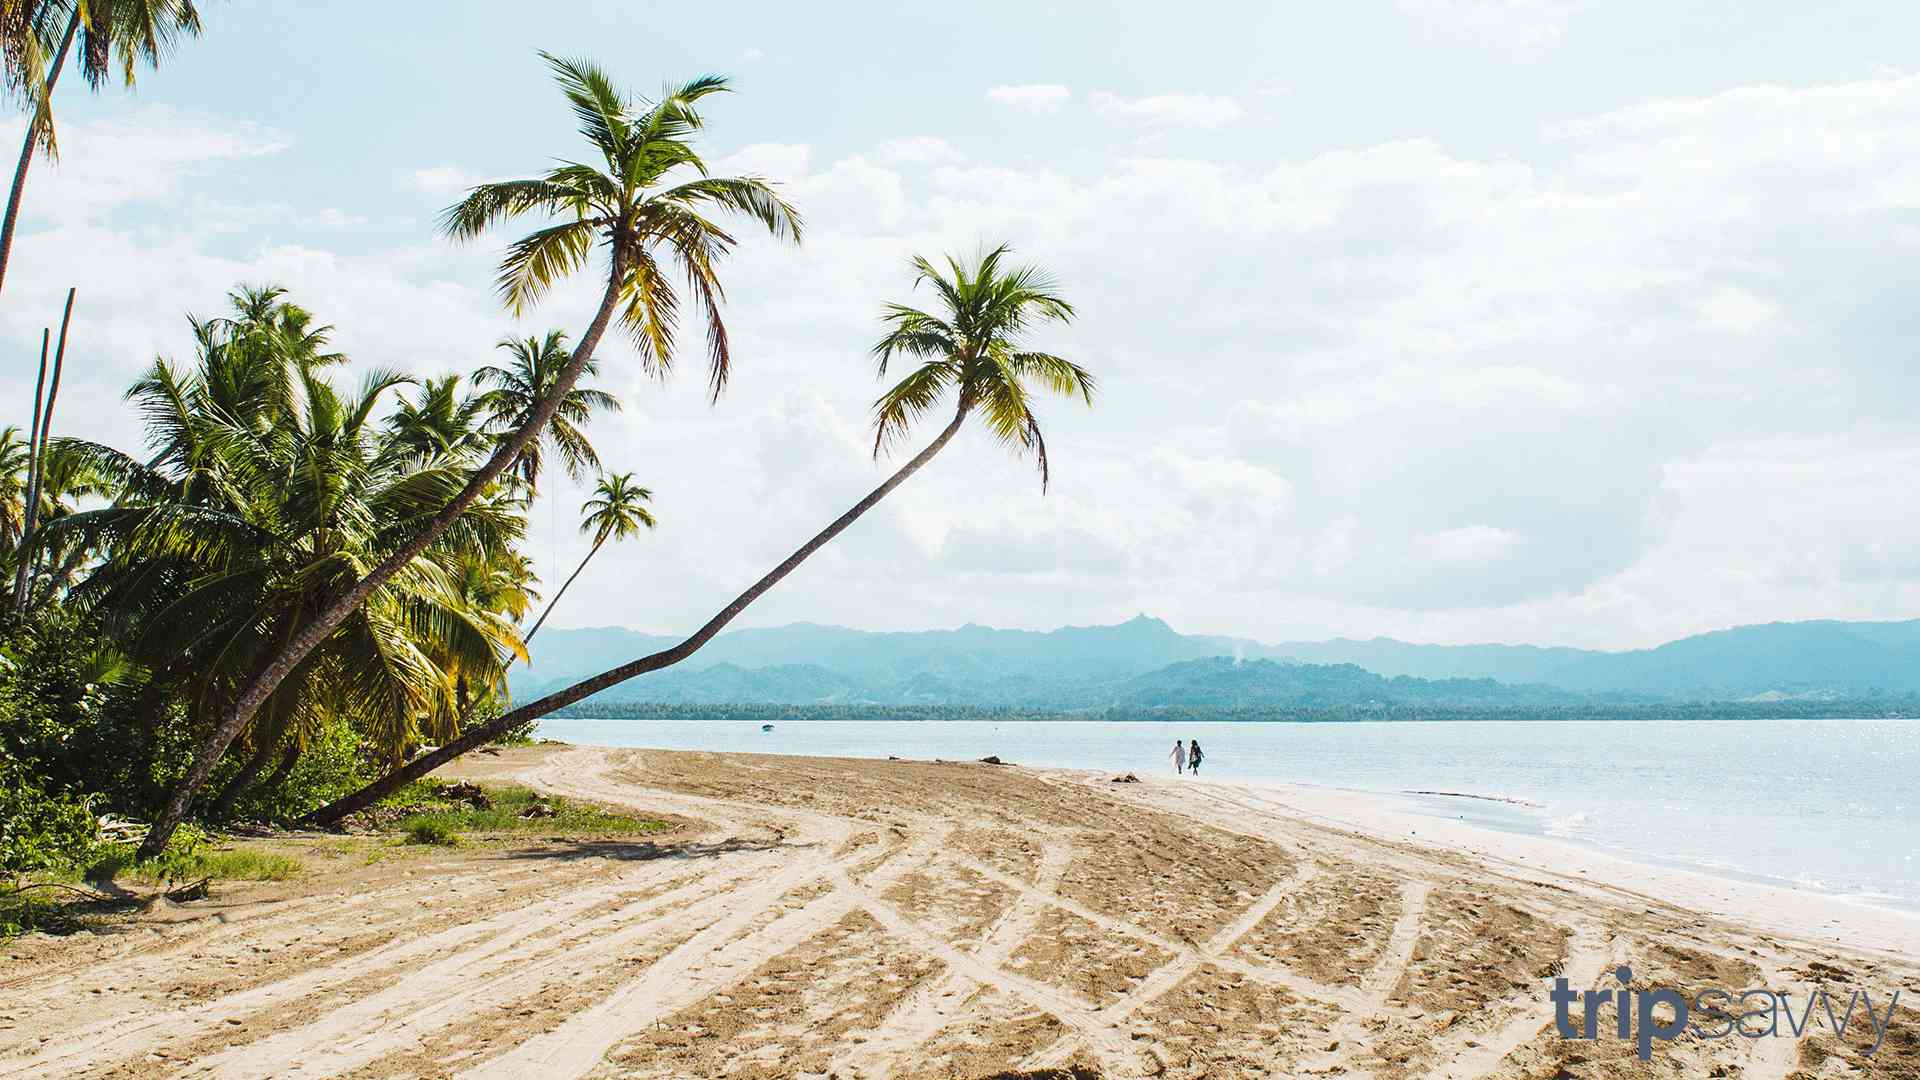 A beach in the DR with two palm trees arching over the sand